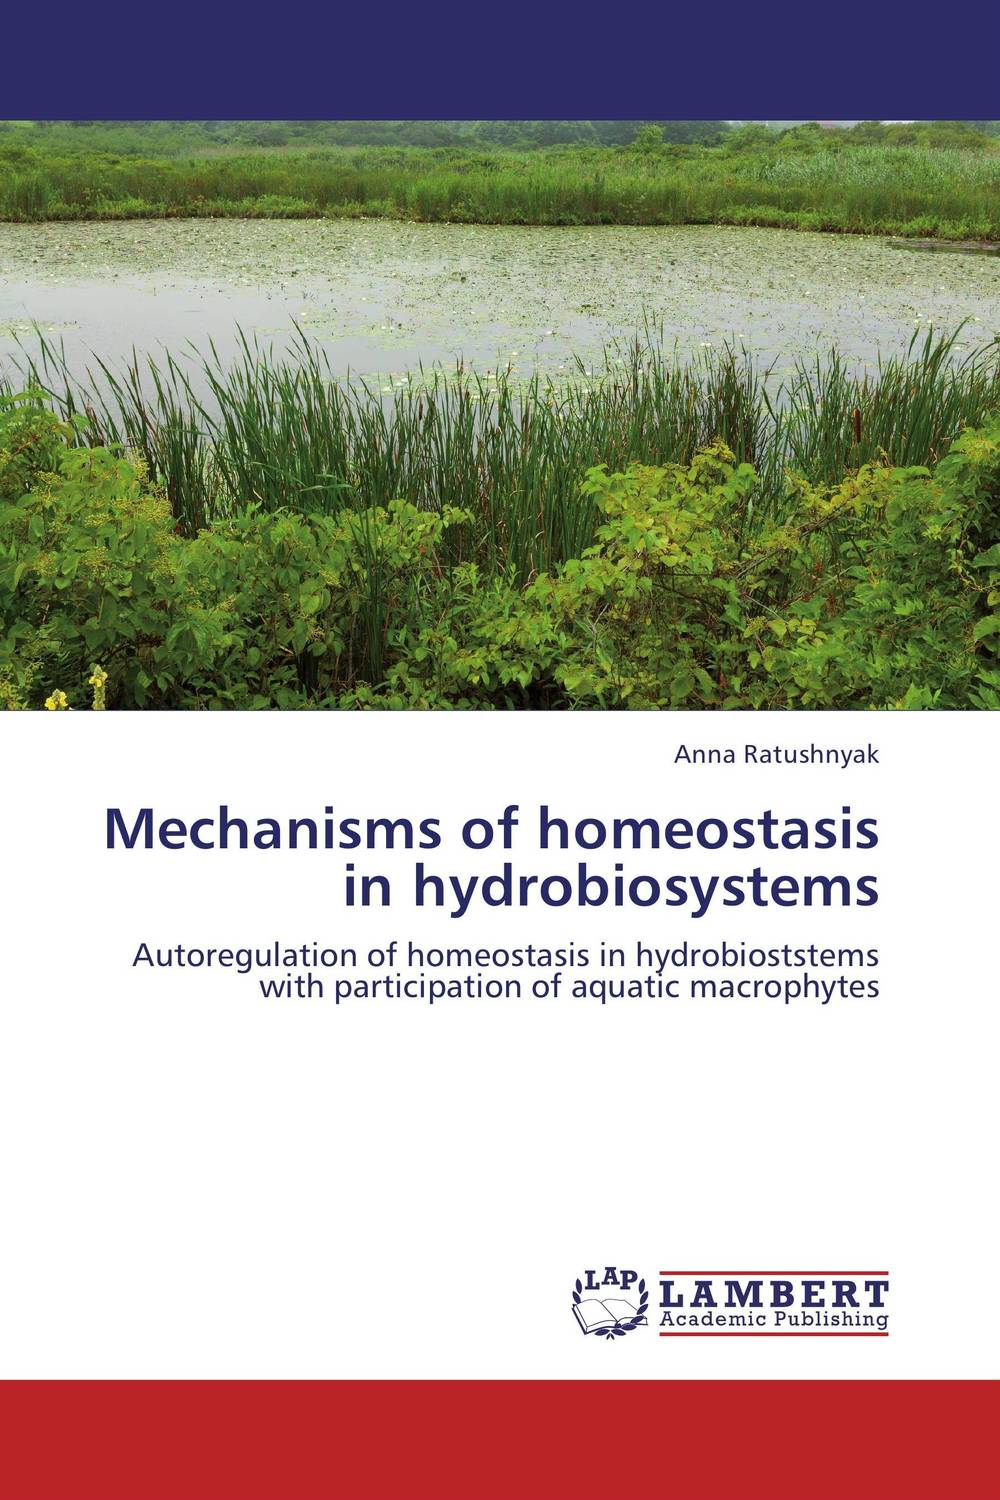 Mechanisms of homeostasis in hydrobiosystems vitamin d effect on calcium homeostasis in preeclampsia